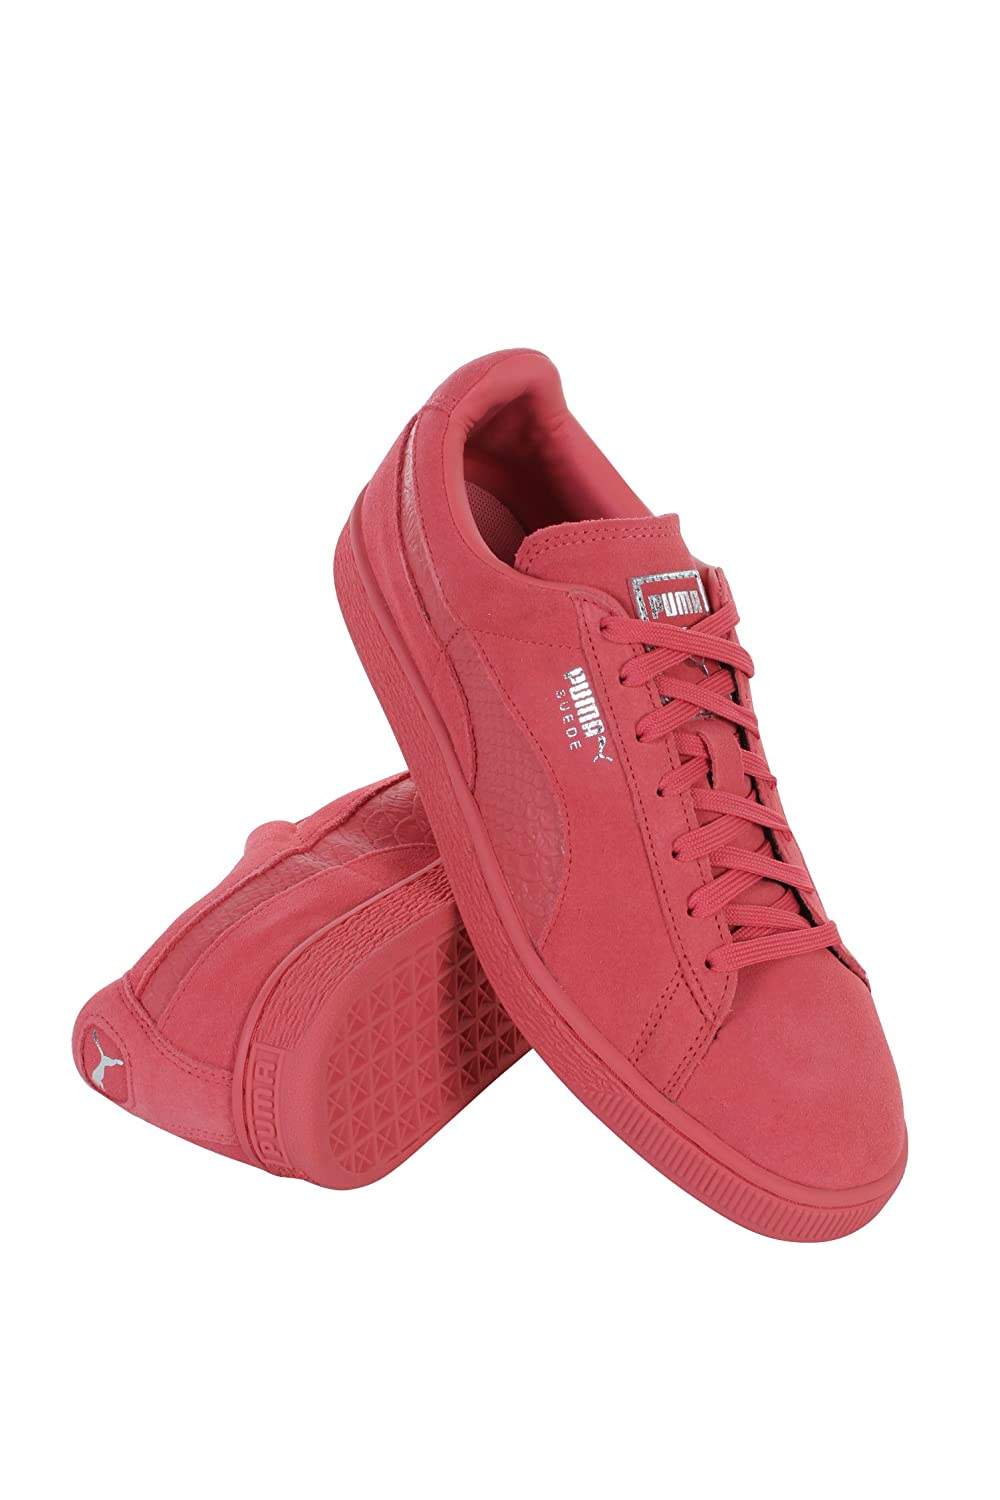 Mens Puma Suede Classic Mono Reptile Running Shoes Pink